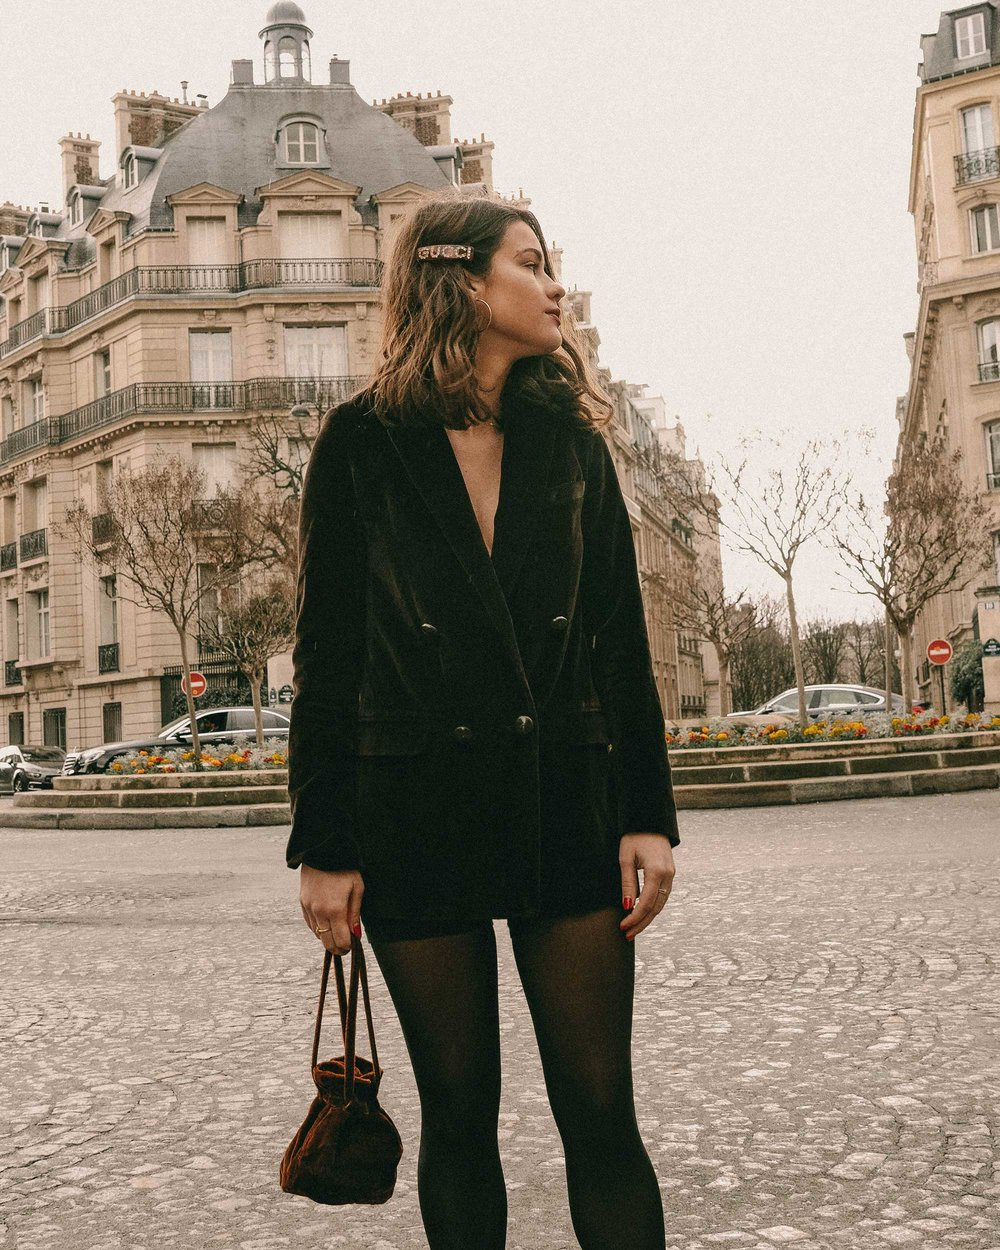 Sarah Butler of Sarah Styles Seattle wears Sezane Christie brown velvet blazer with tights and Crystal Gucci single hair barrette in Paris, France | @sarahchristine, Seattle Blogger -4.jpg